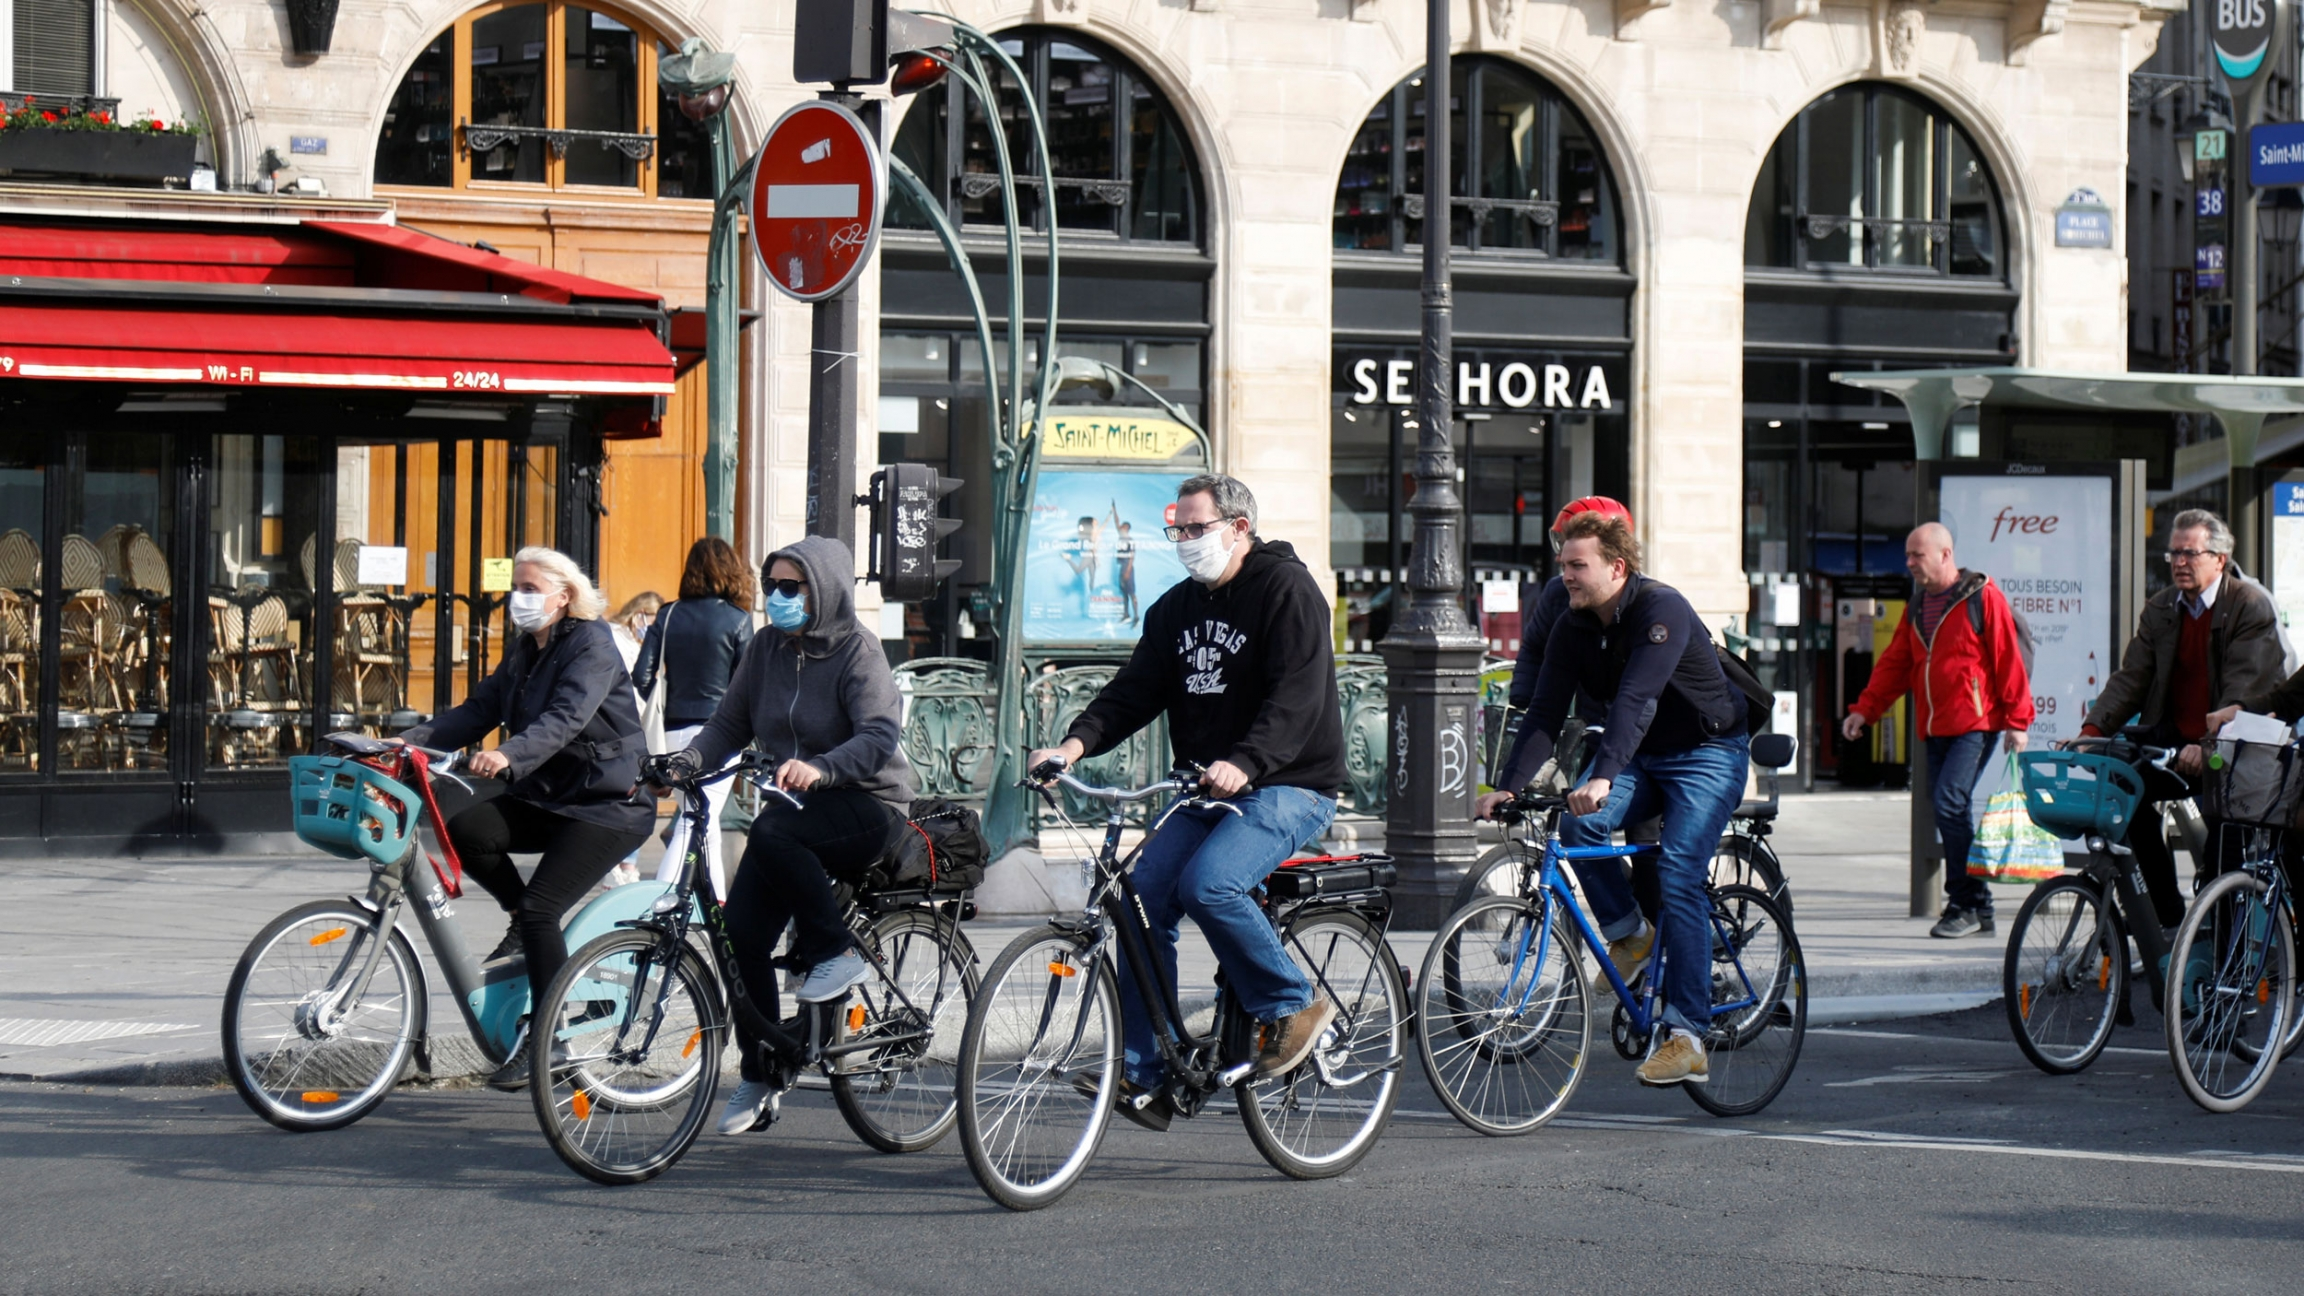 A group of several people are shown riding bicycles in the streets and wearing protective face masks.